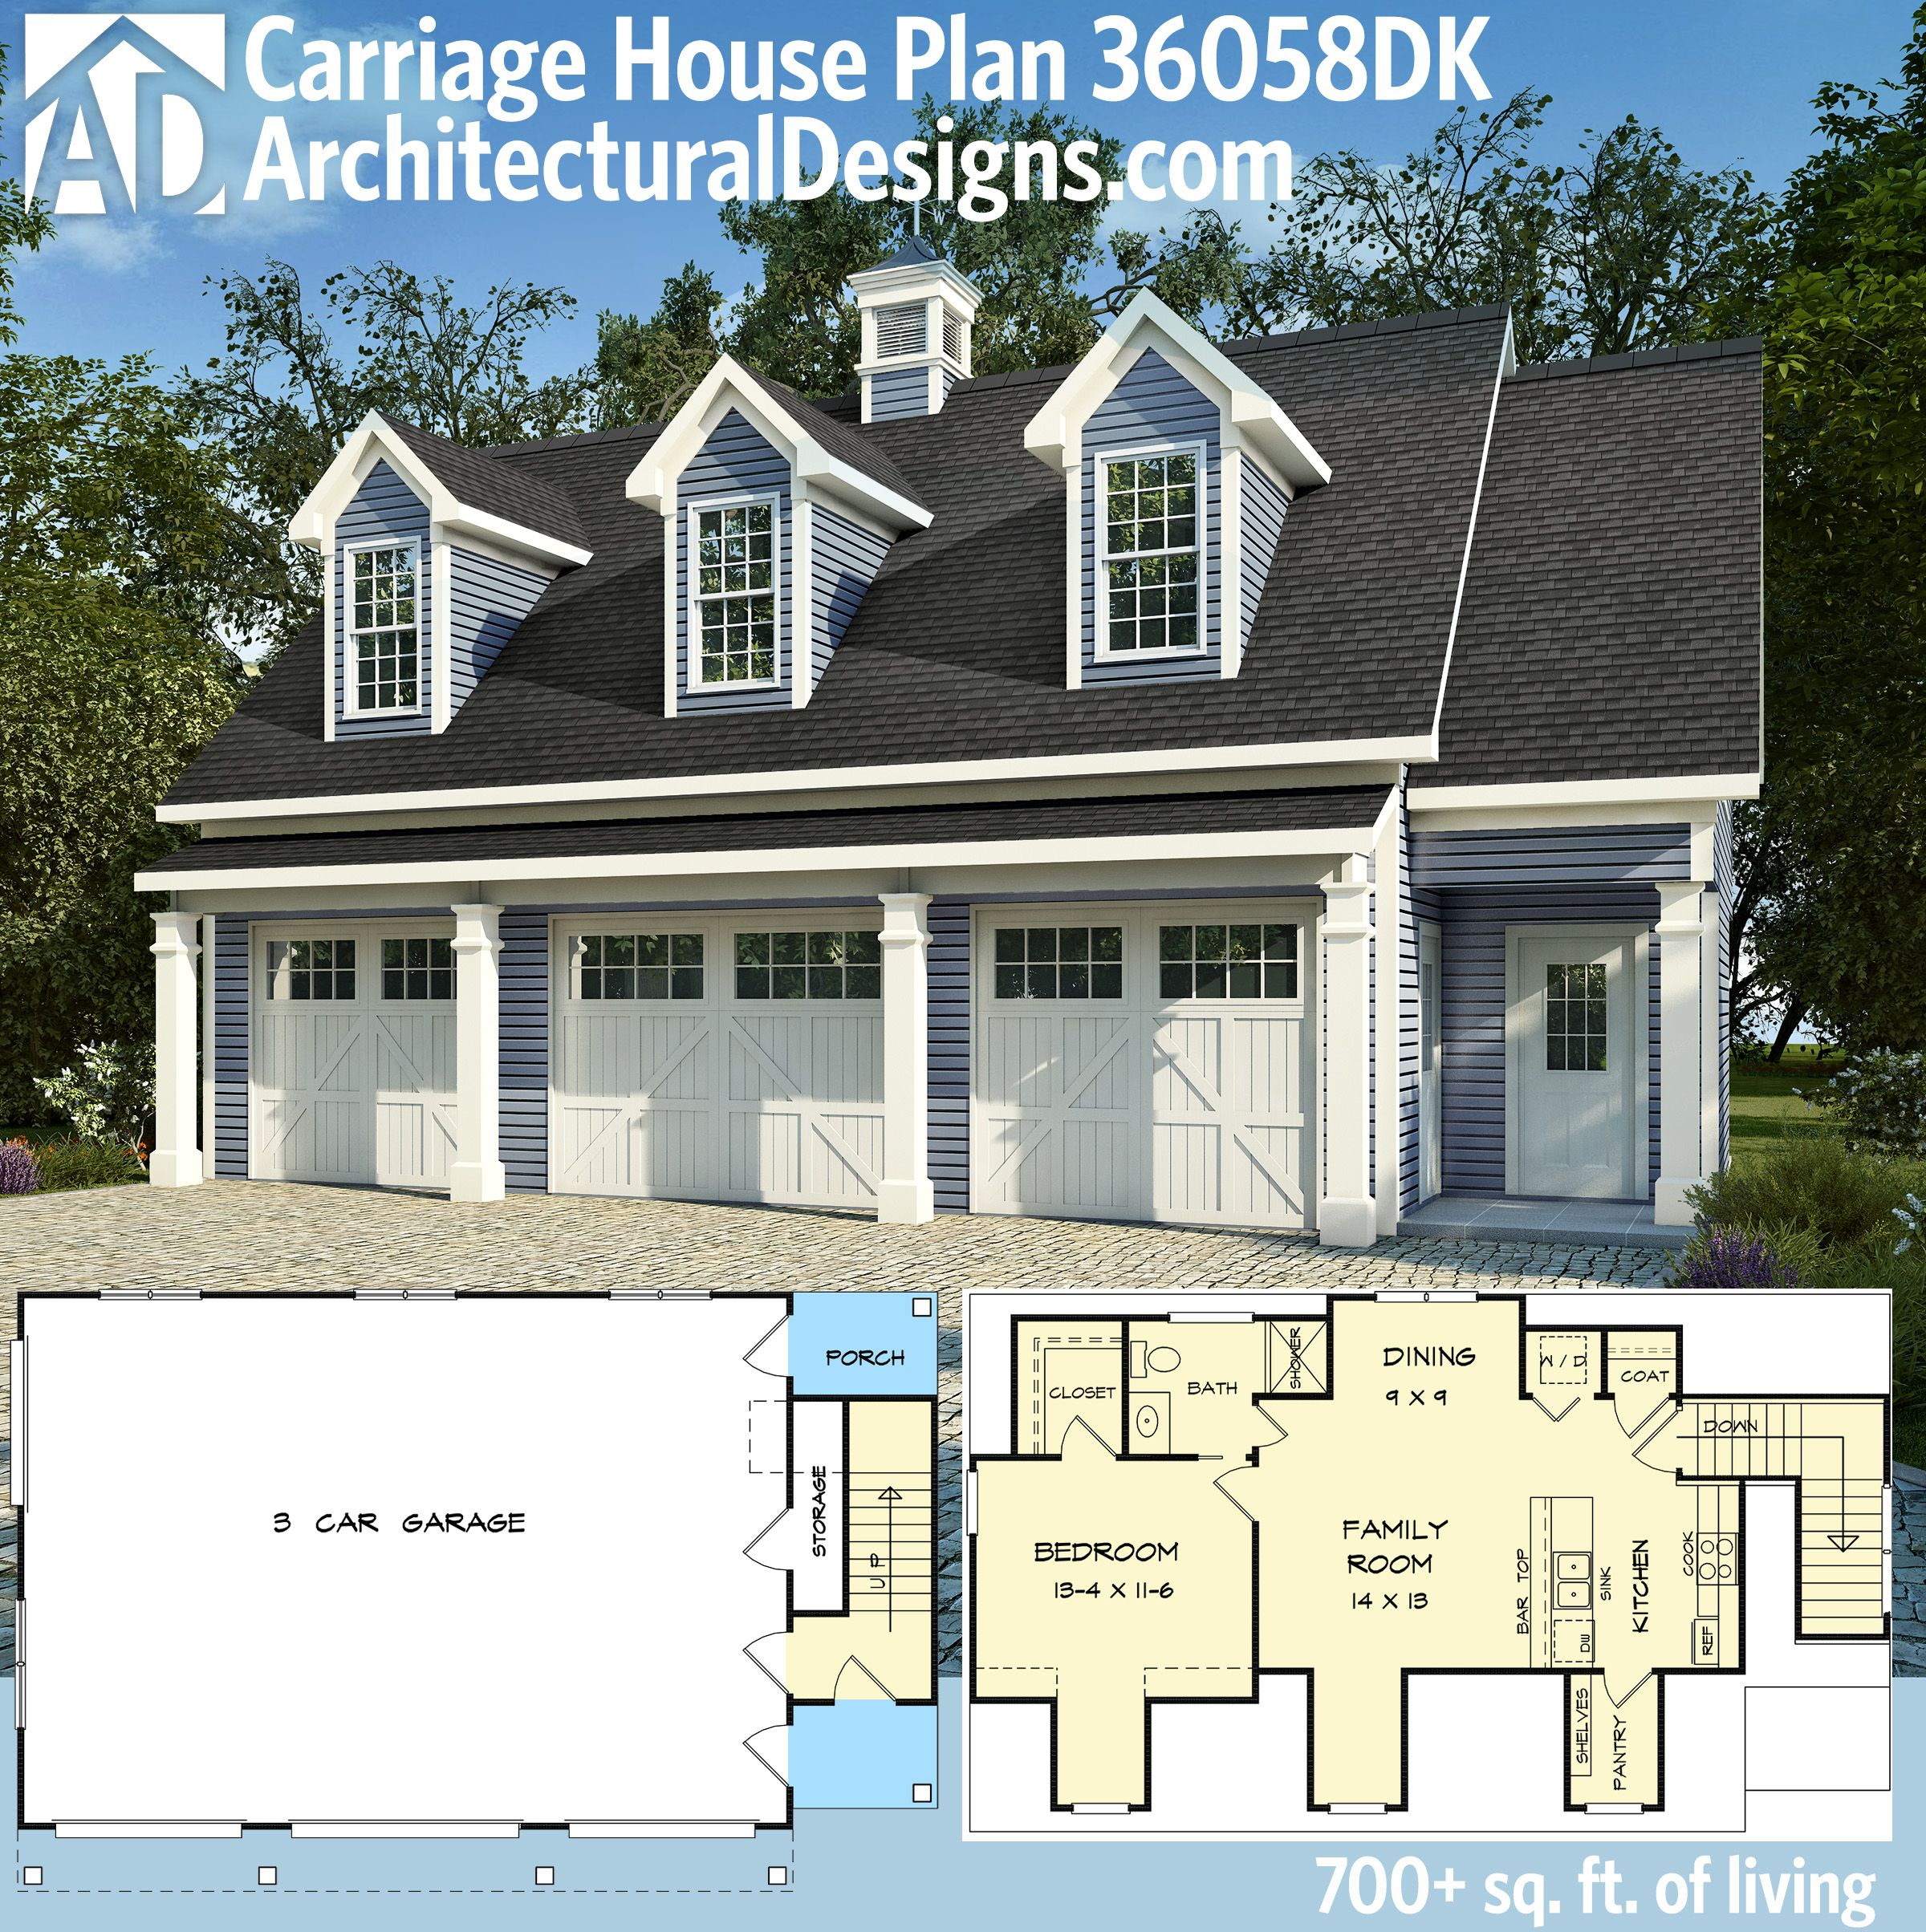 Architectural Designs Carriage House Plan 36058DK makes